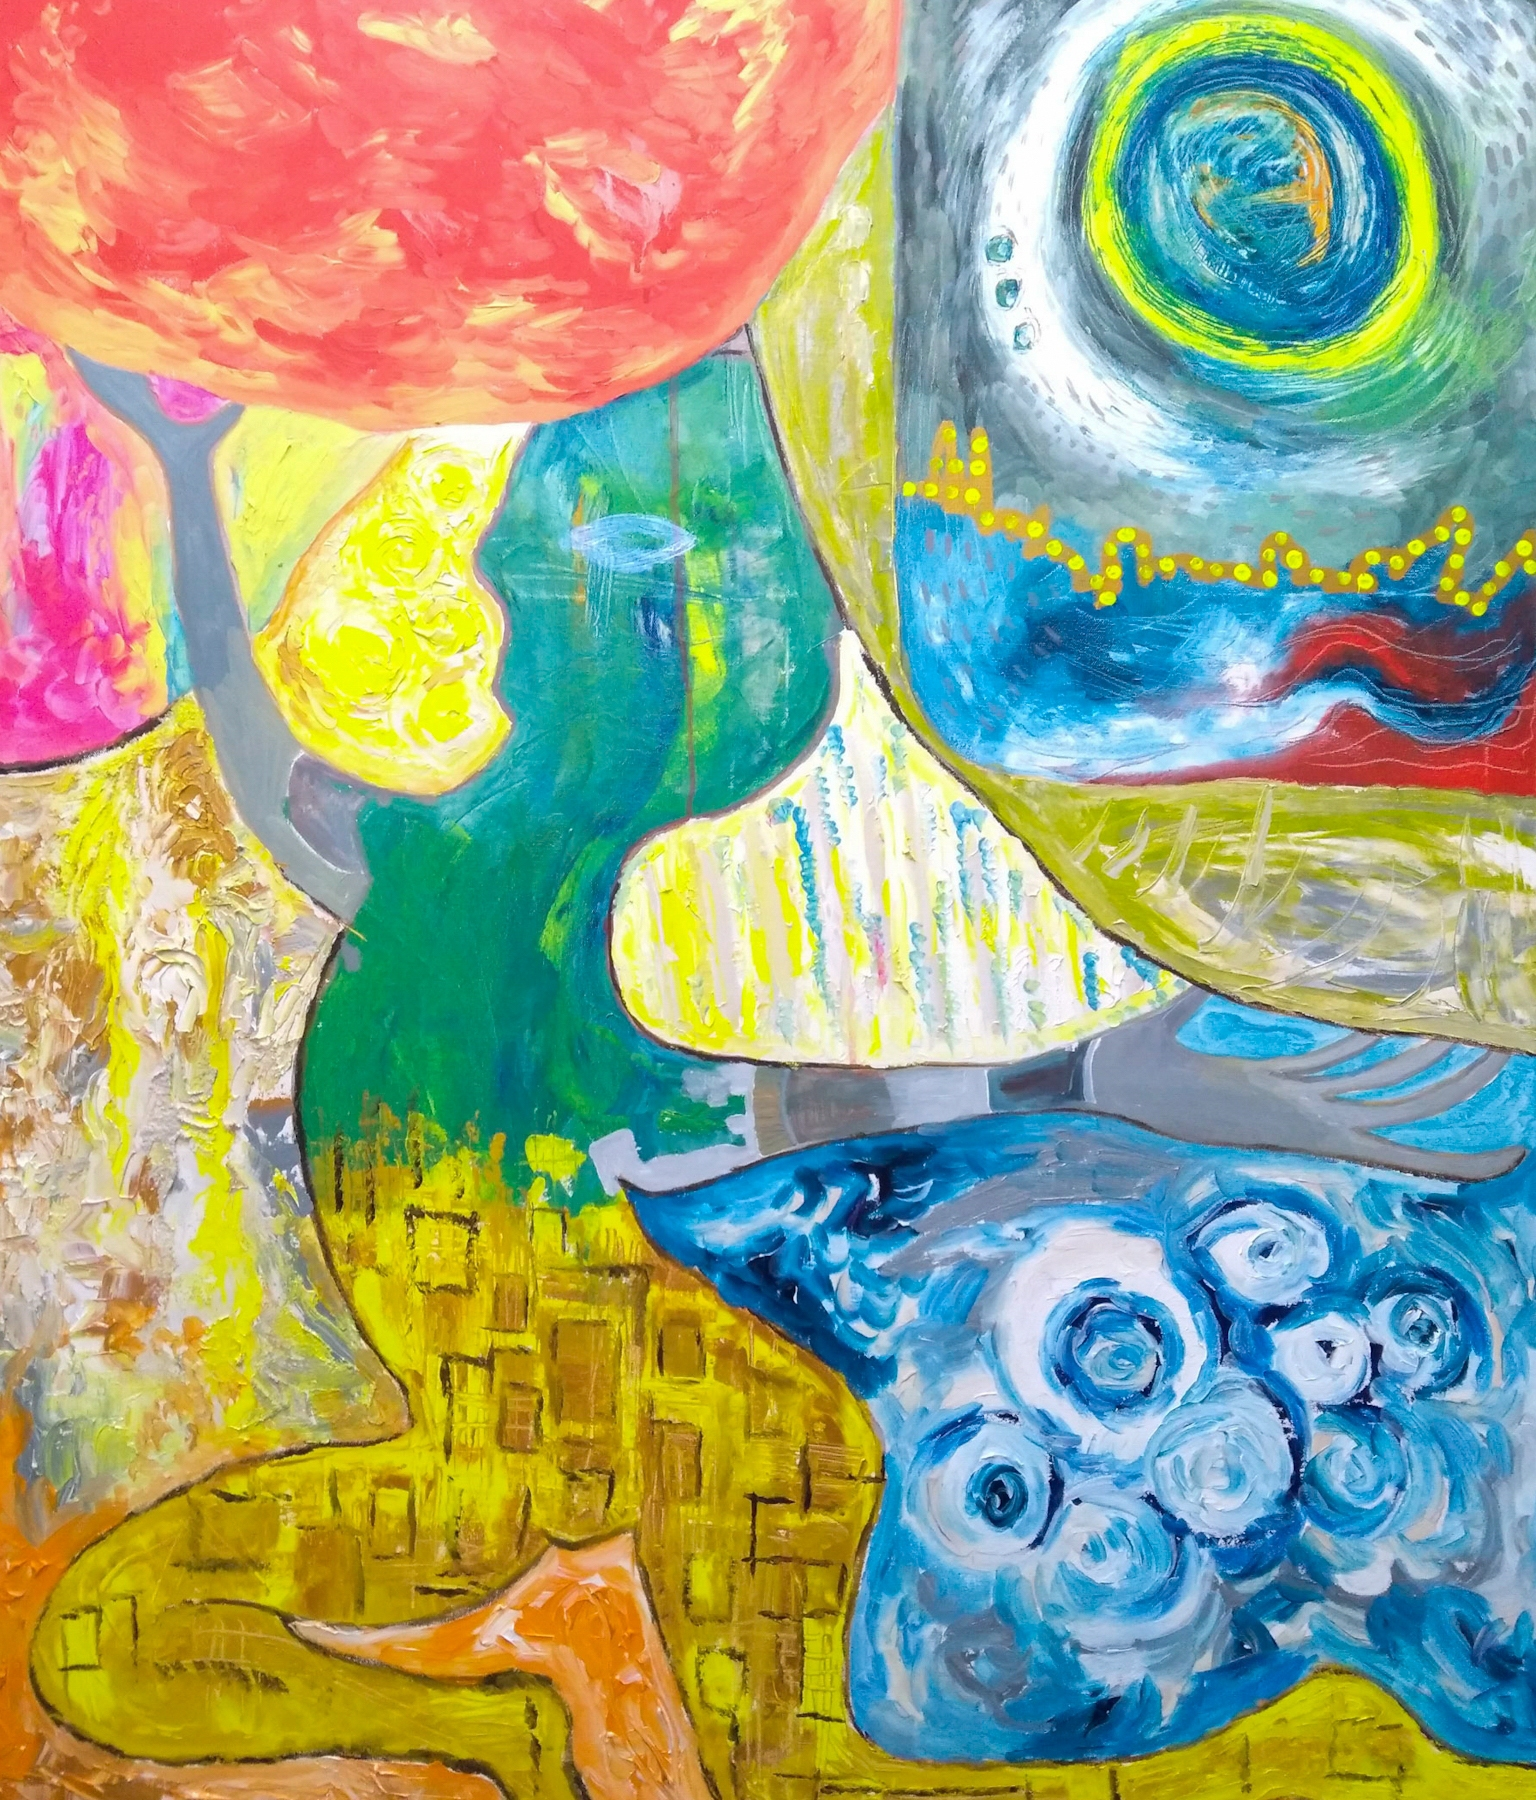 Bright colourful exuberant art: Acrylic expressionist painting by Phoebe Thomasson